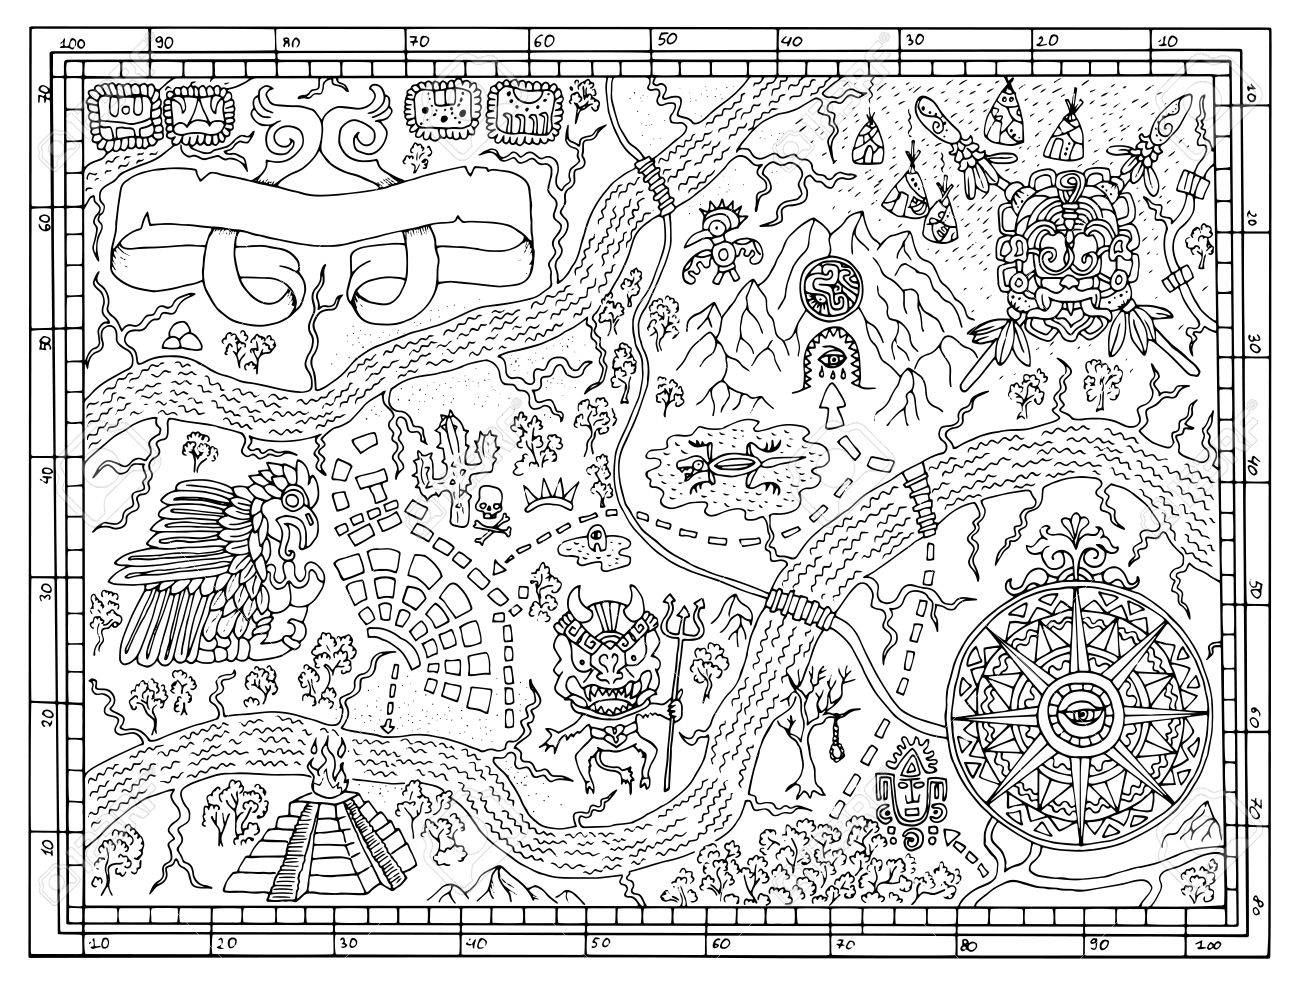 1300x985 Ancient Maya Or Pirate Map For Adult Or Kids Coloring Book. Hand